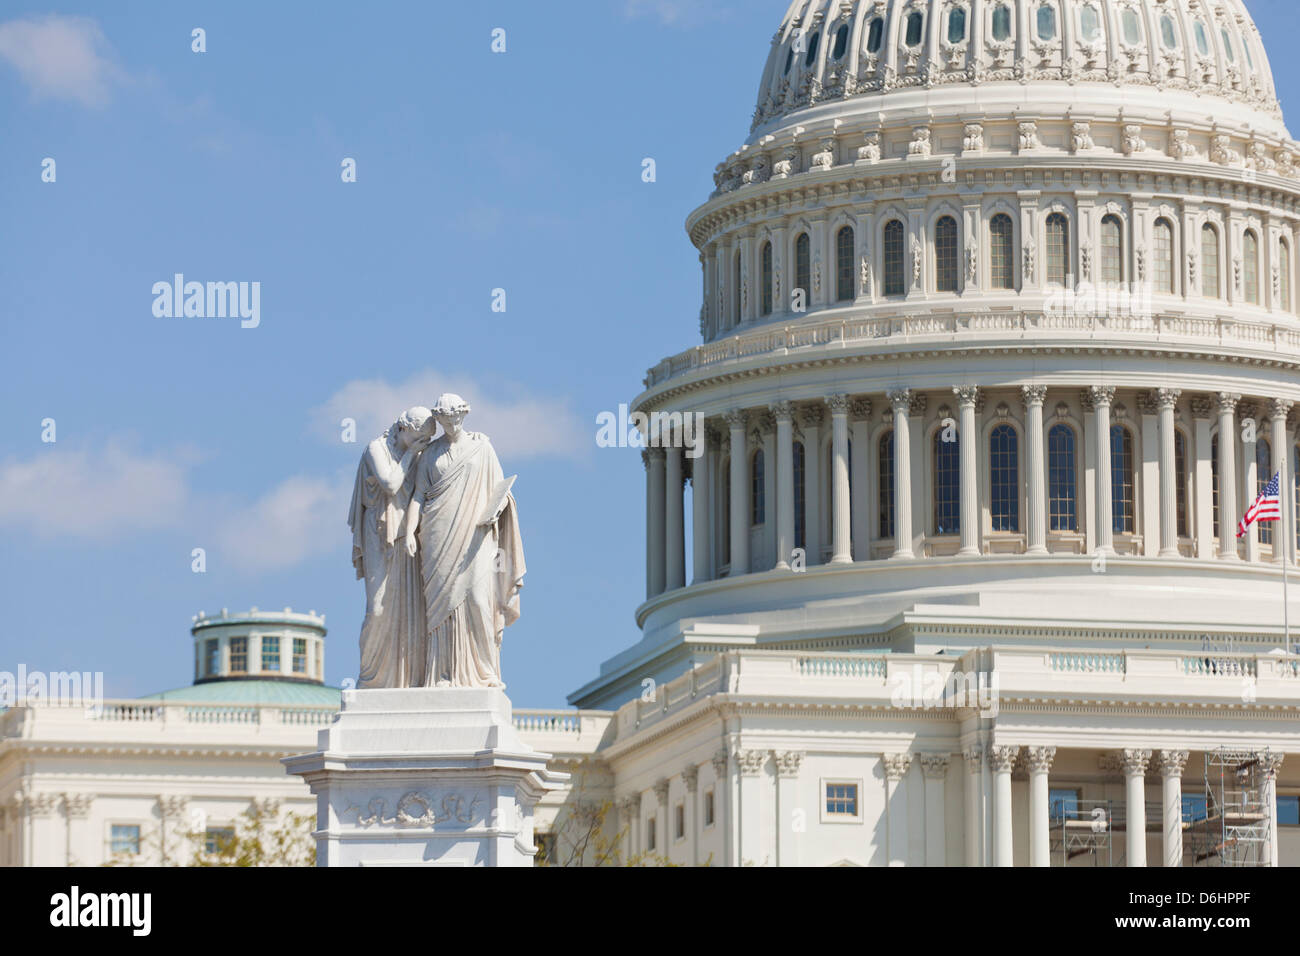 Statue of Grief and History of the Peace Monument at the US Capitol grounds - Washington, DC USA - Stock Image